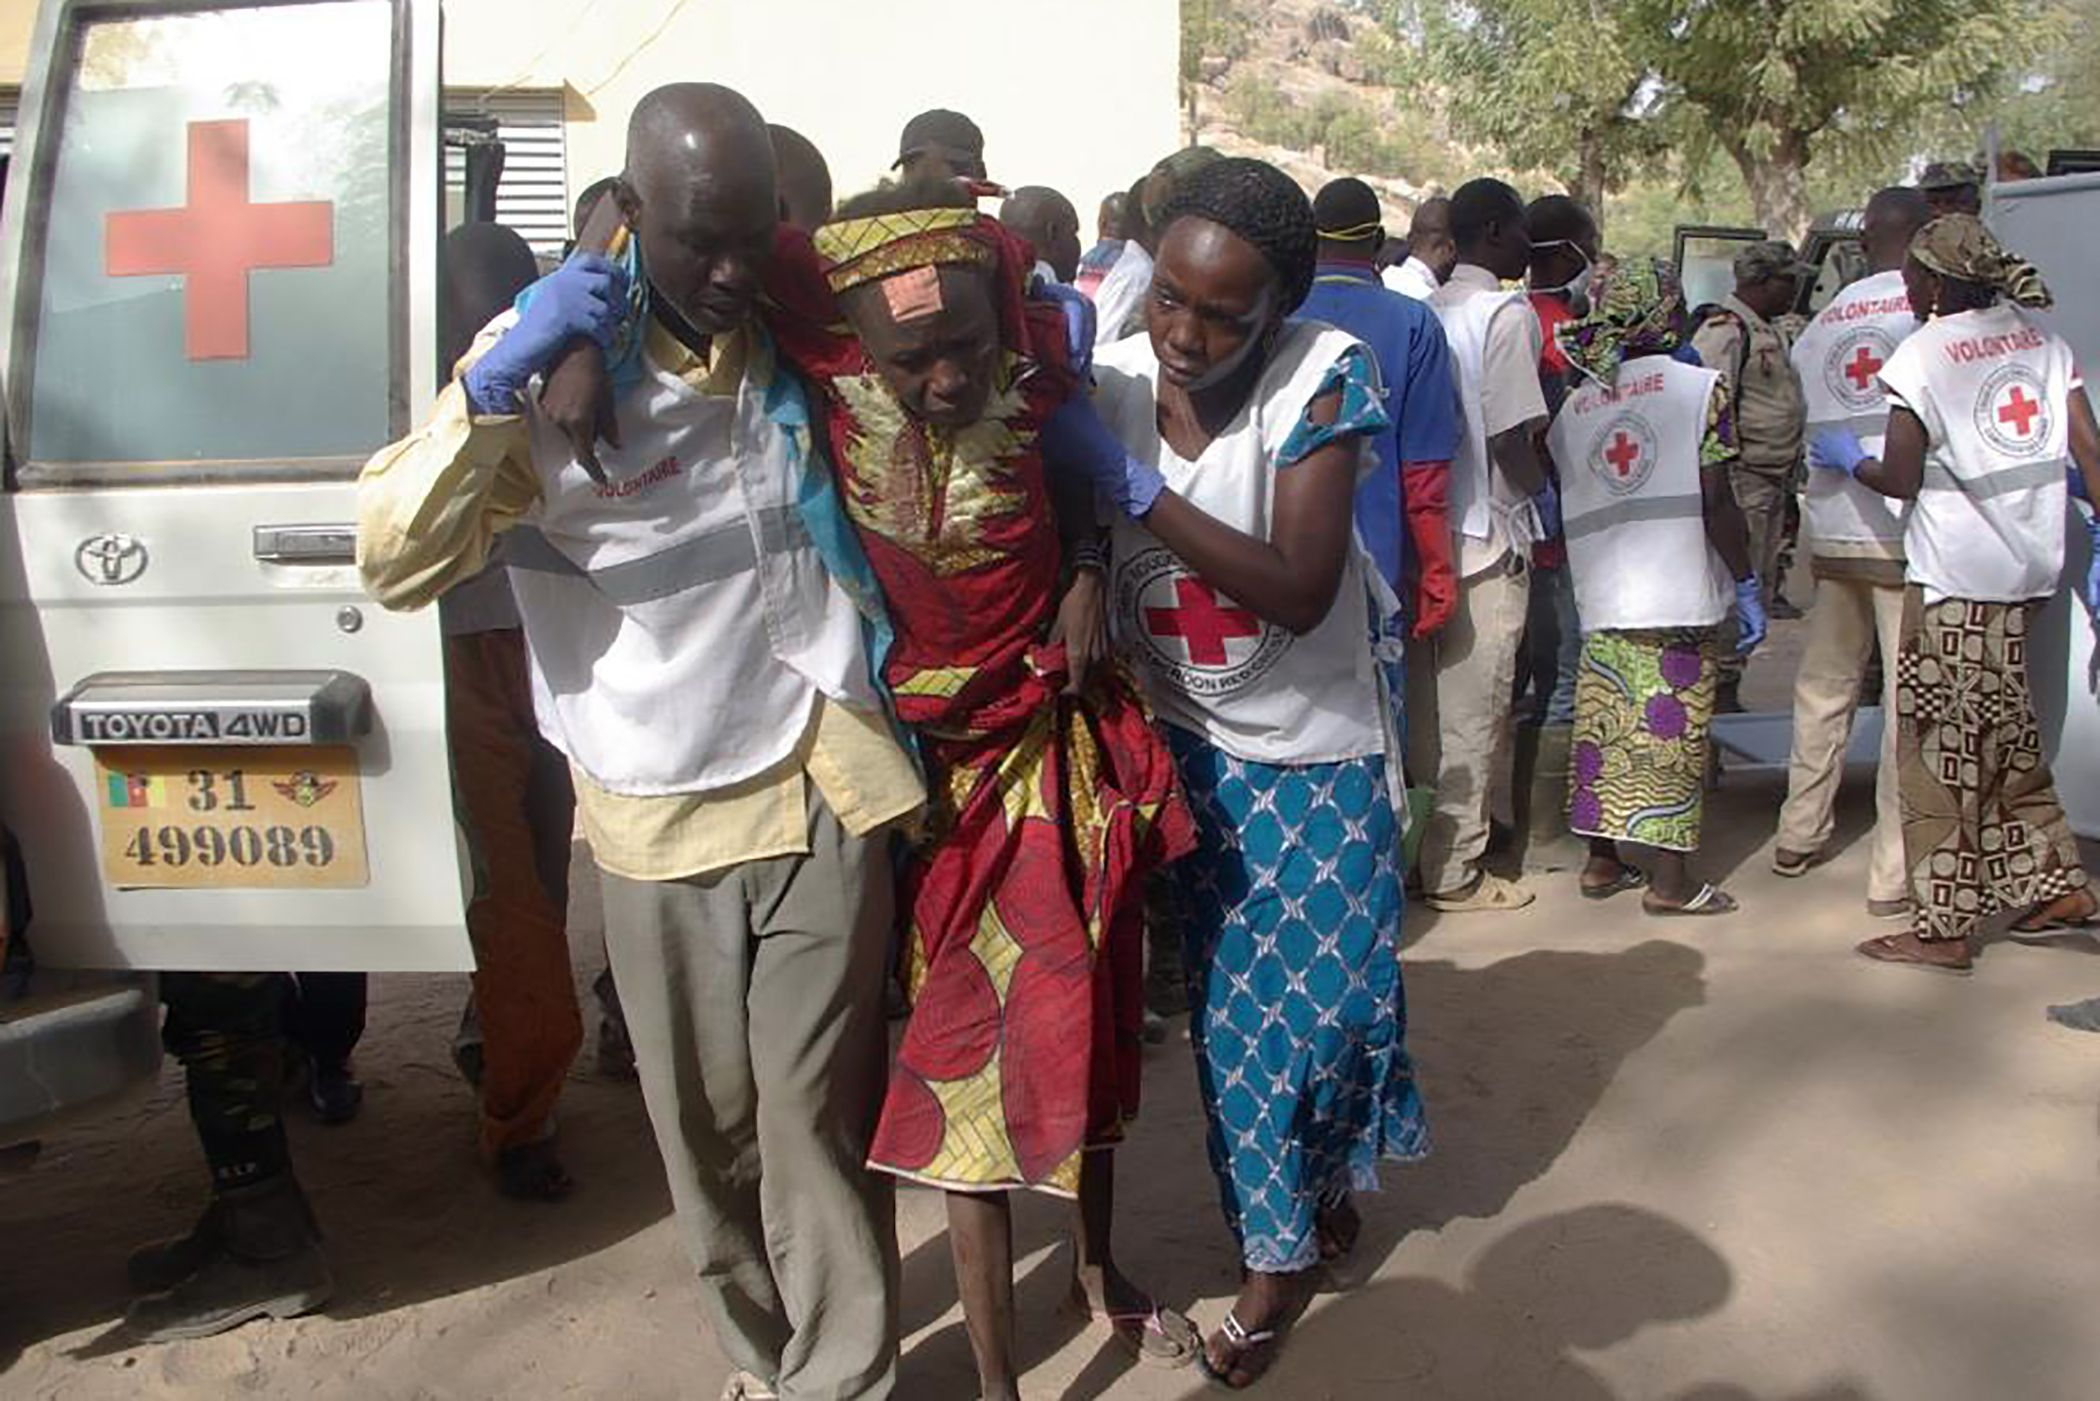 A wounded woman is evacuated after a Boko Haram suicide attack in Cameroon.